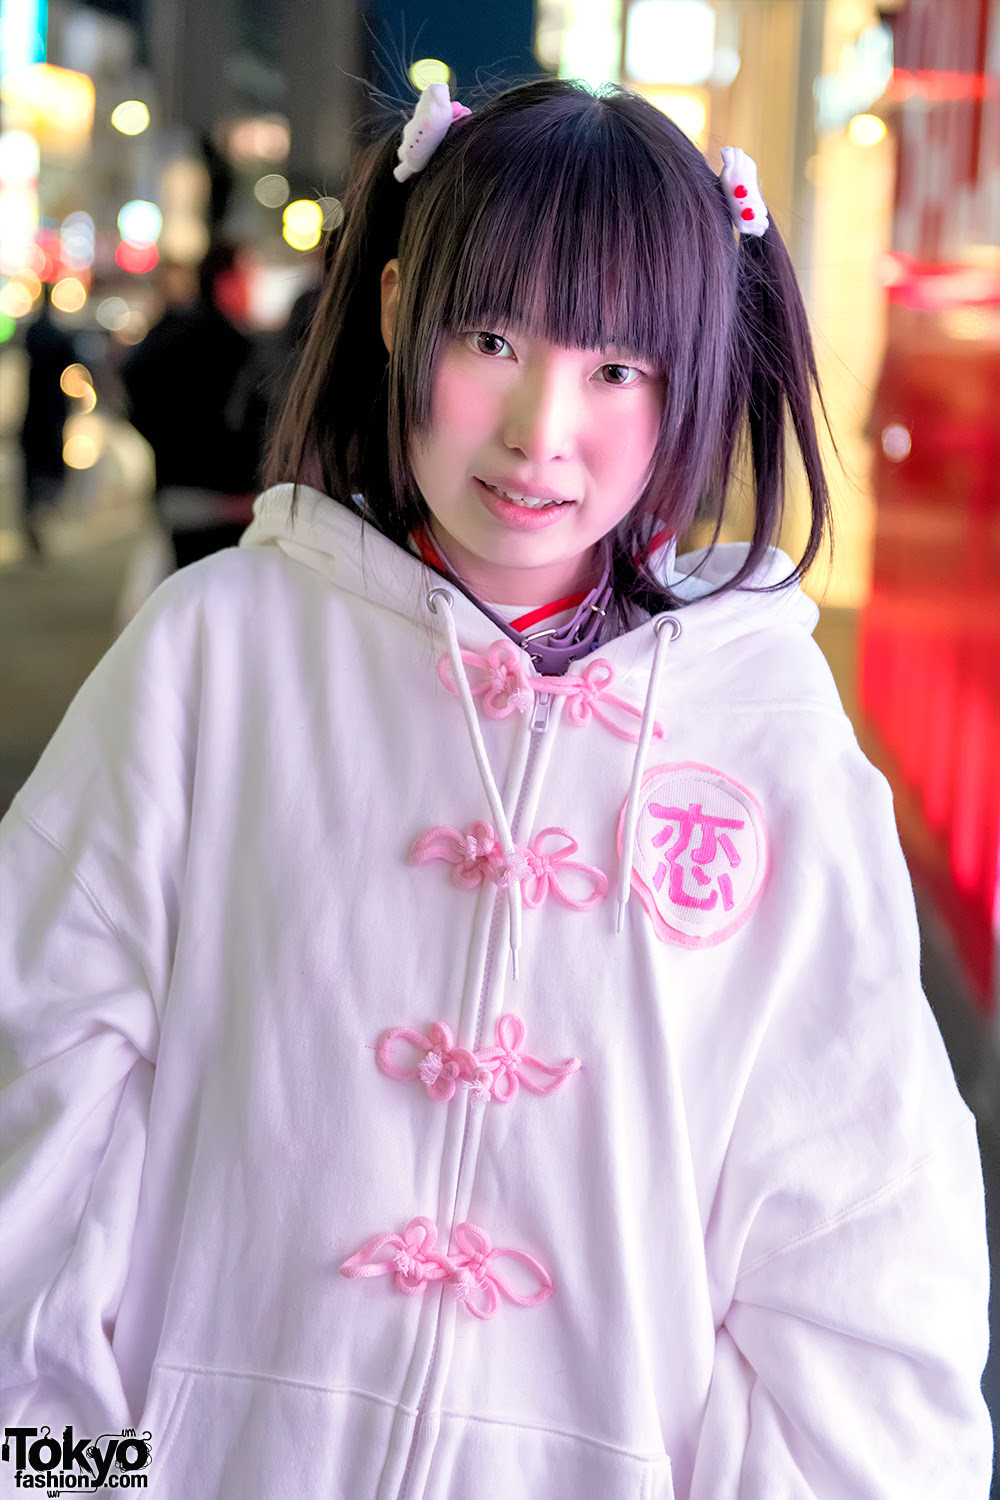 harajuku girl in zzz oversize hoodie nile perch candye